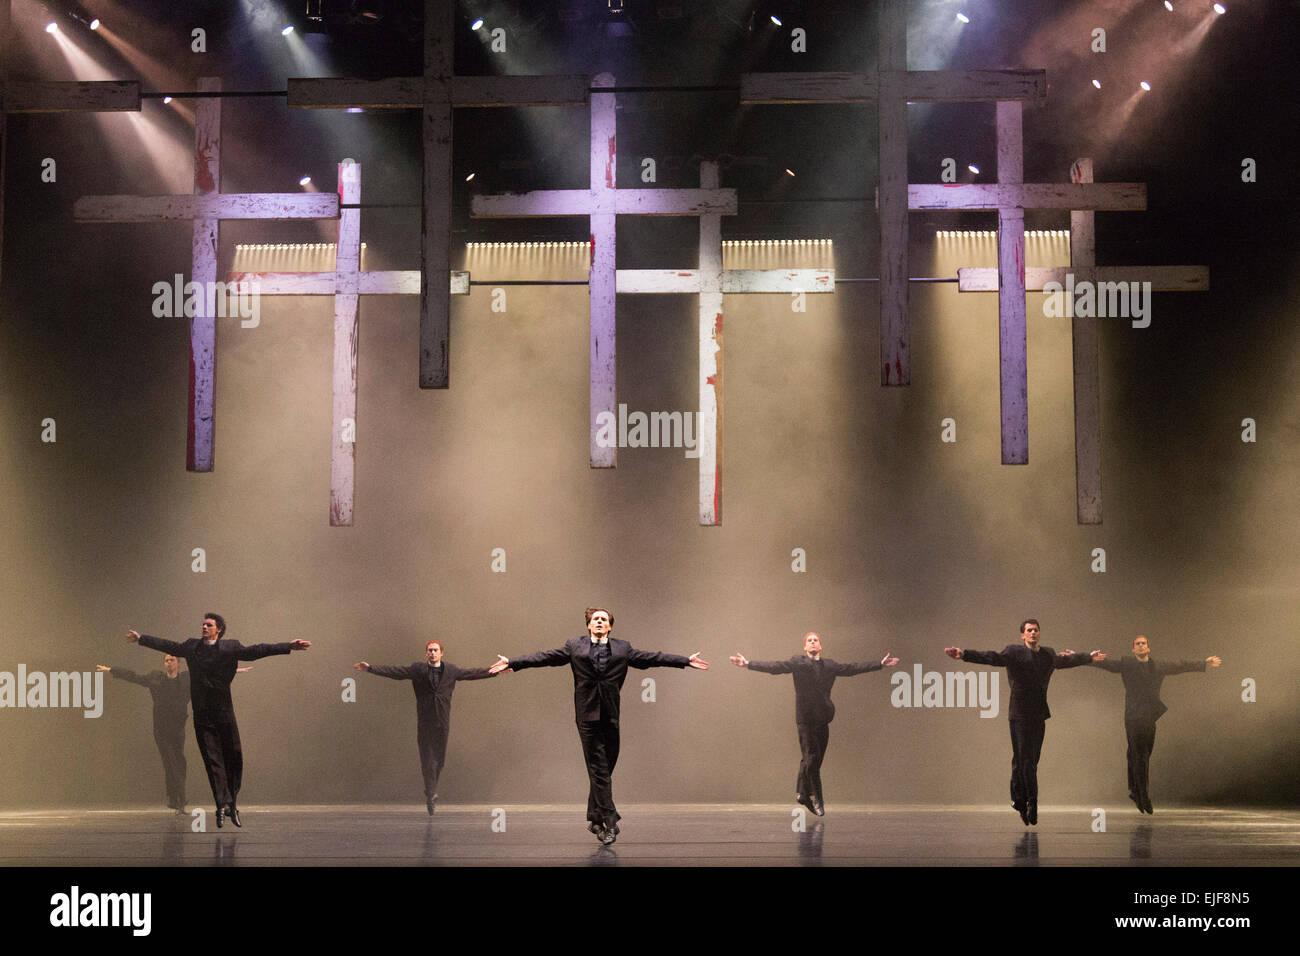 London, England. Pictured: Dress rehearsal of Carmina burana, music by Carl Orff with choreography by David Bintley. - Stock Image